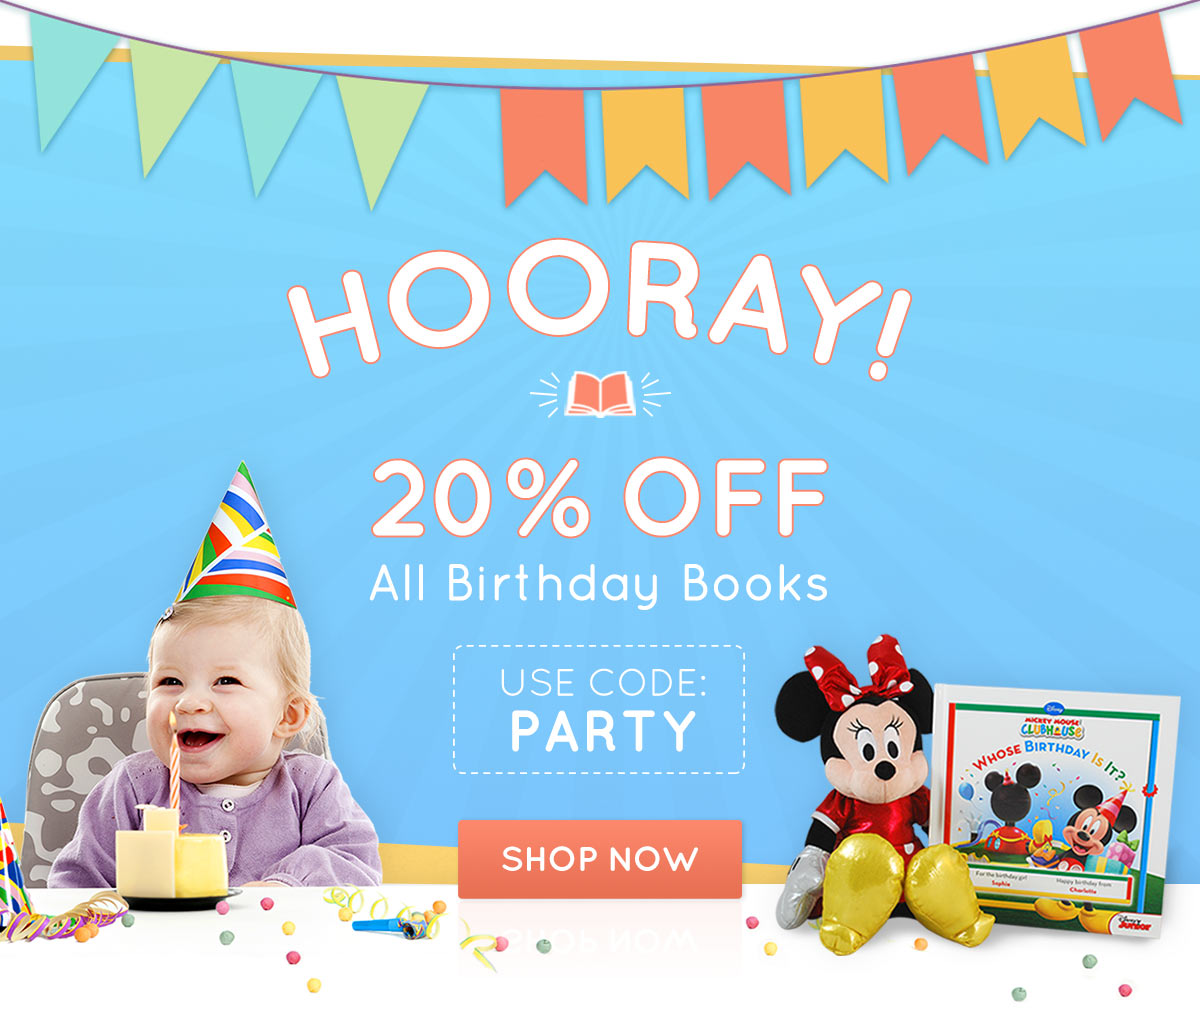 20% OFF All birthday books with code PARTY